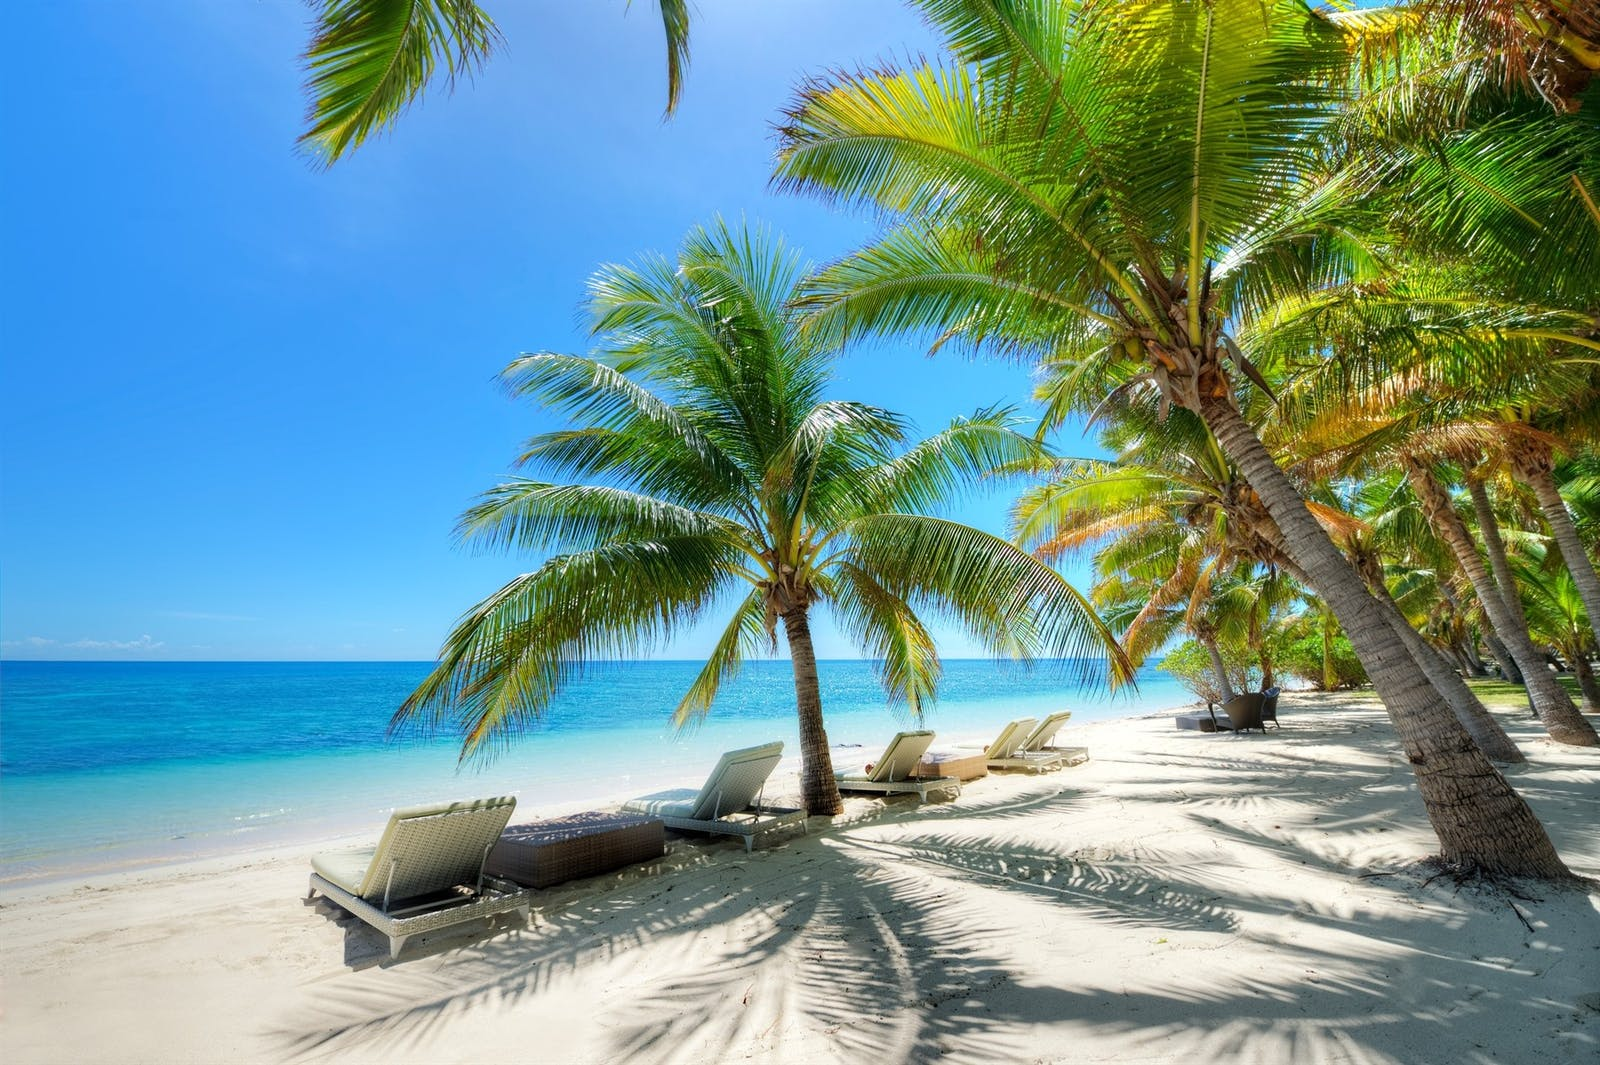 Beachfront at VOMO Island Resort, Fiji